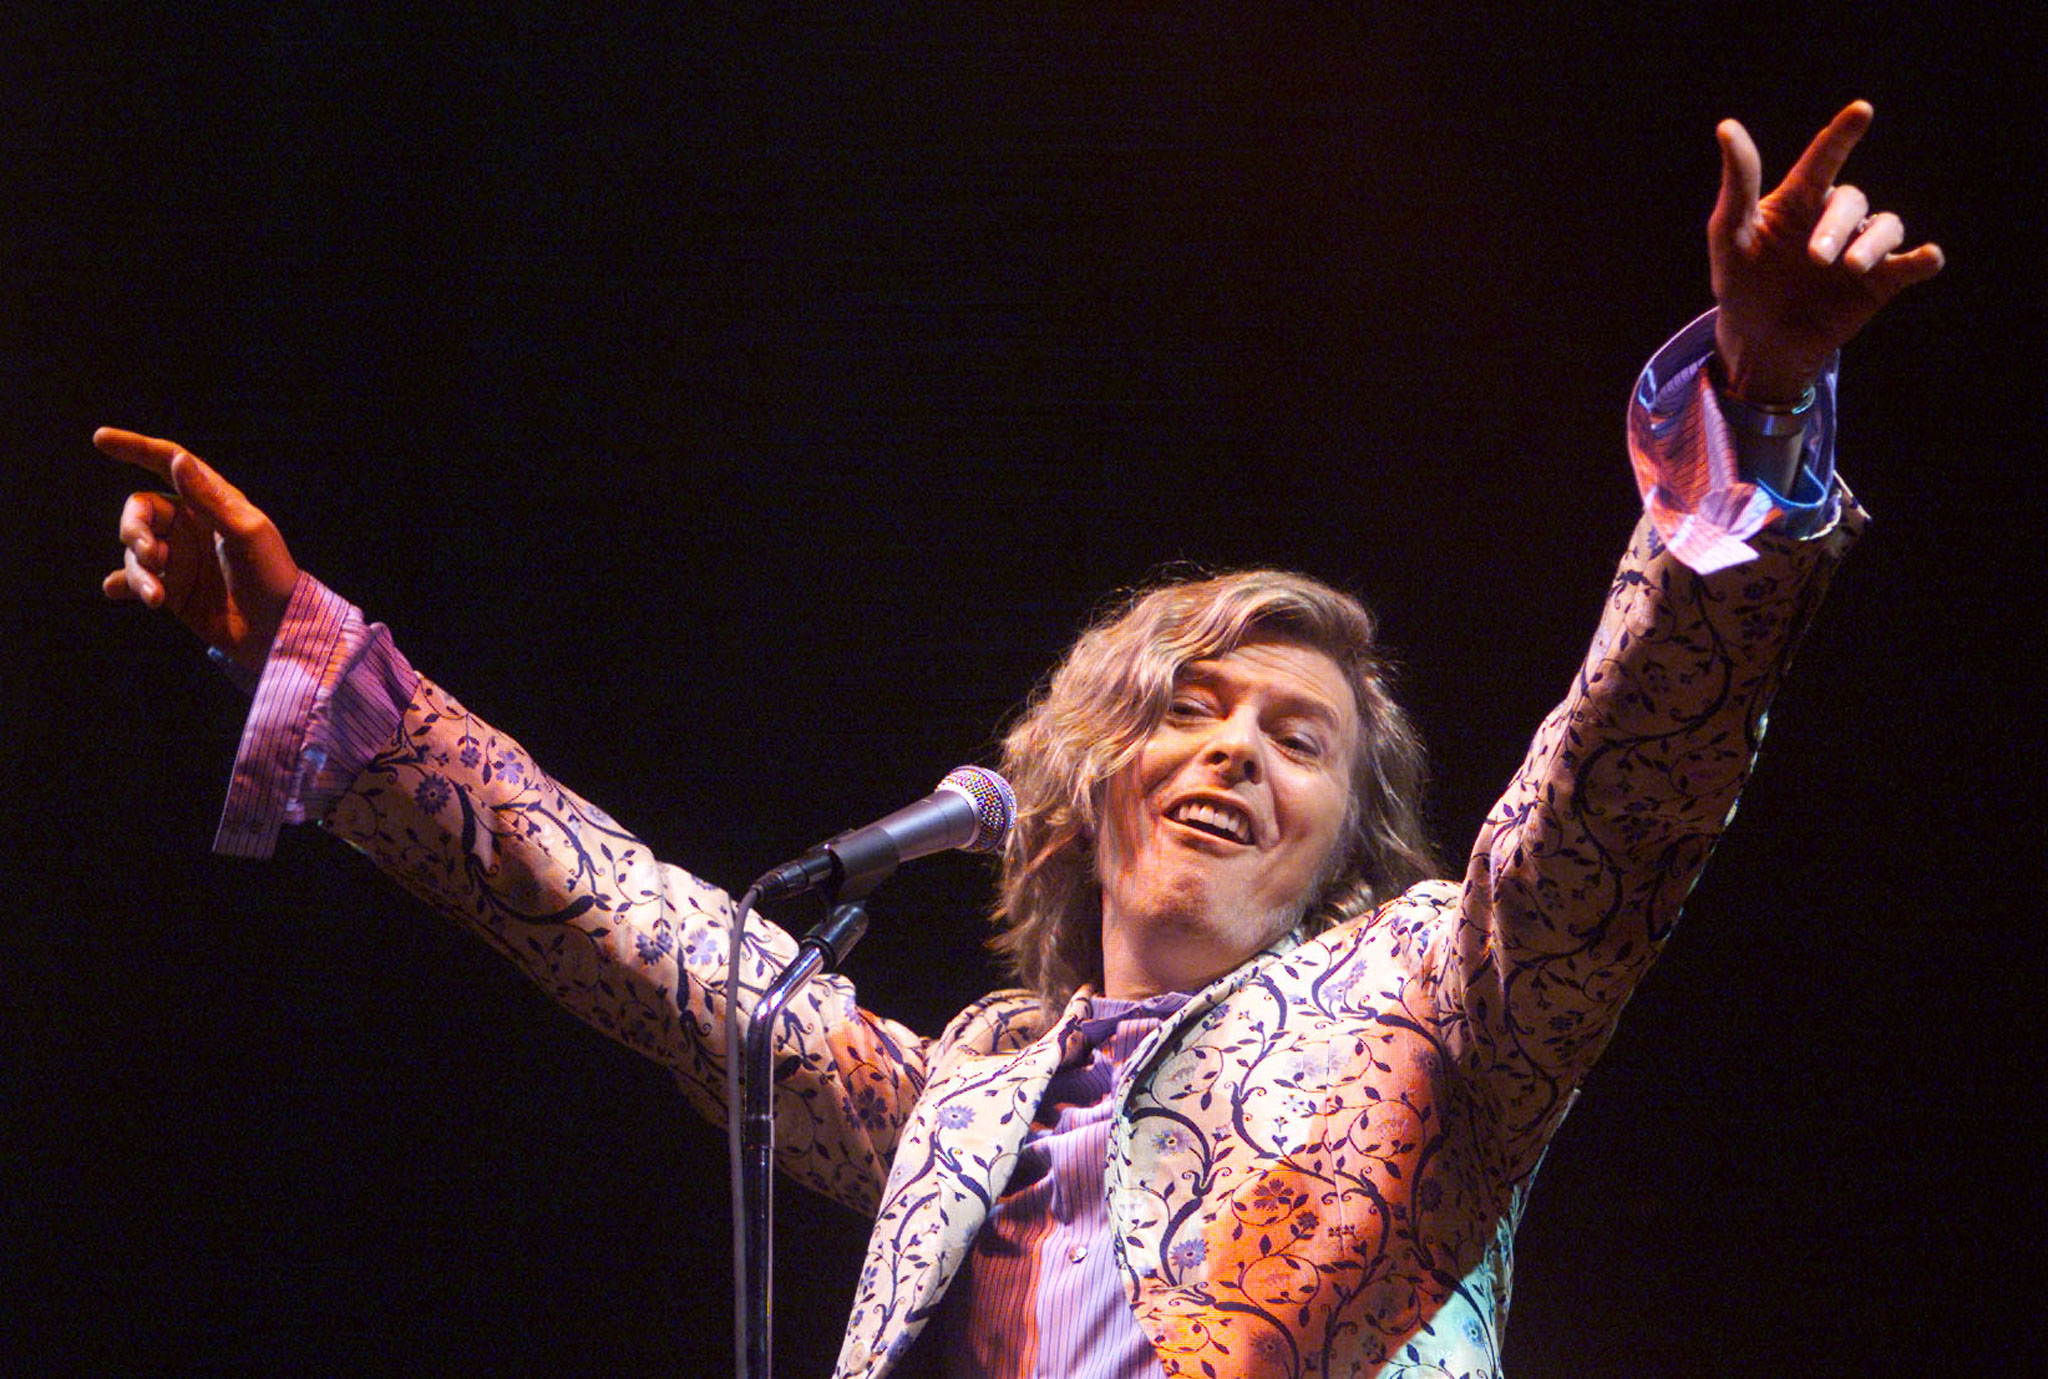 David Bowie headlines at the Glastonbury Festival June 25, 2000. Day three of the festival saw a performance by rock legend Bowie playing for the first time at Glastonbury since 1971, when the event was only in its second year.